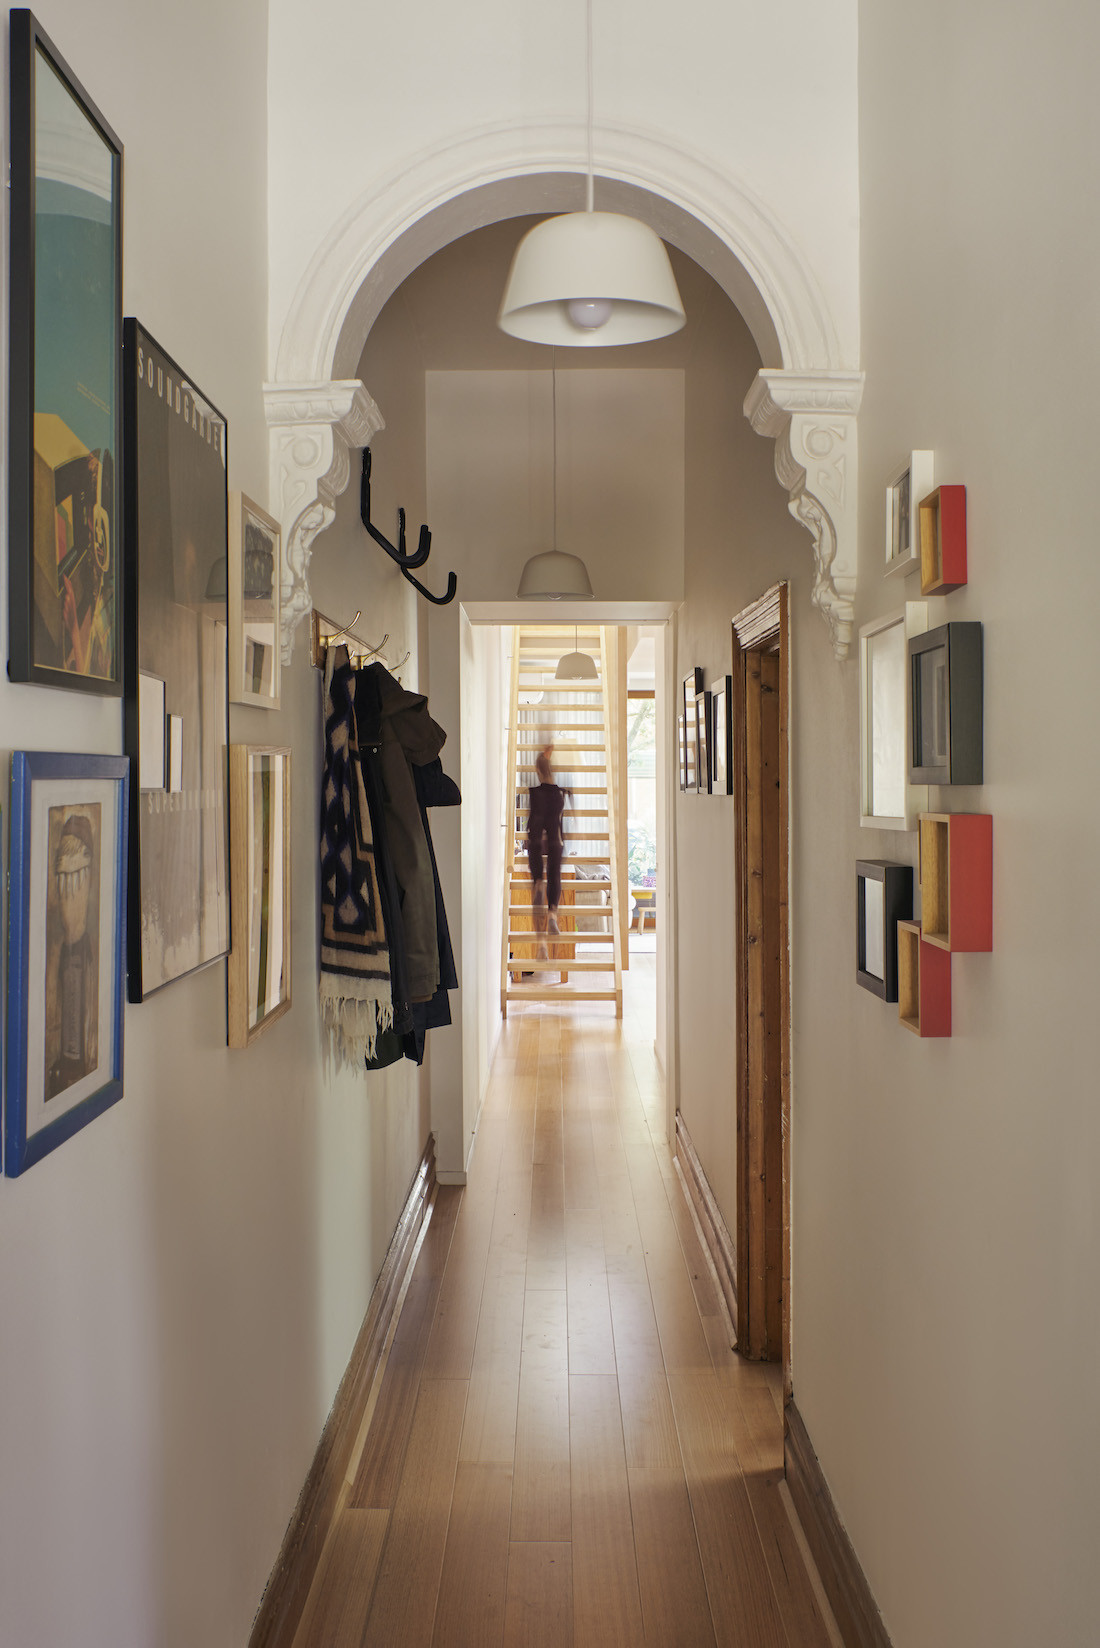 A white entrance hallway has high ceilings and an archway with photographs covering the walls.